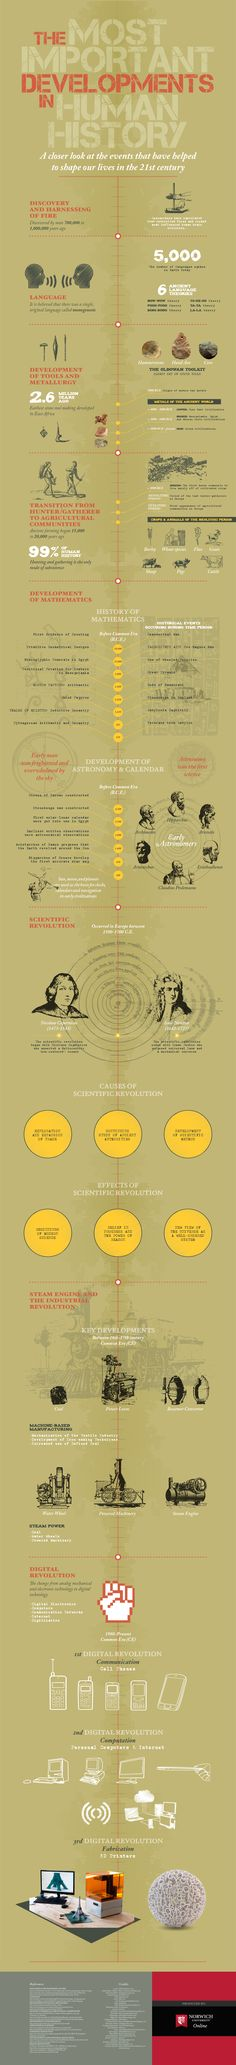 The Most Important Developments In Human History  #Human #History #development   #infographics repinned by @Piktochart